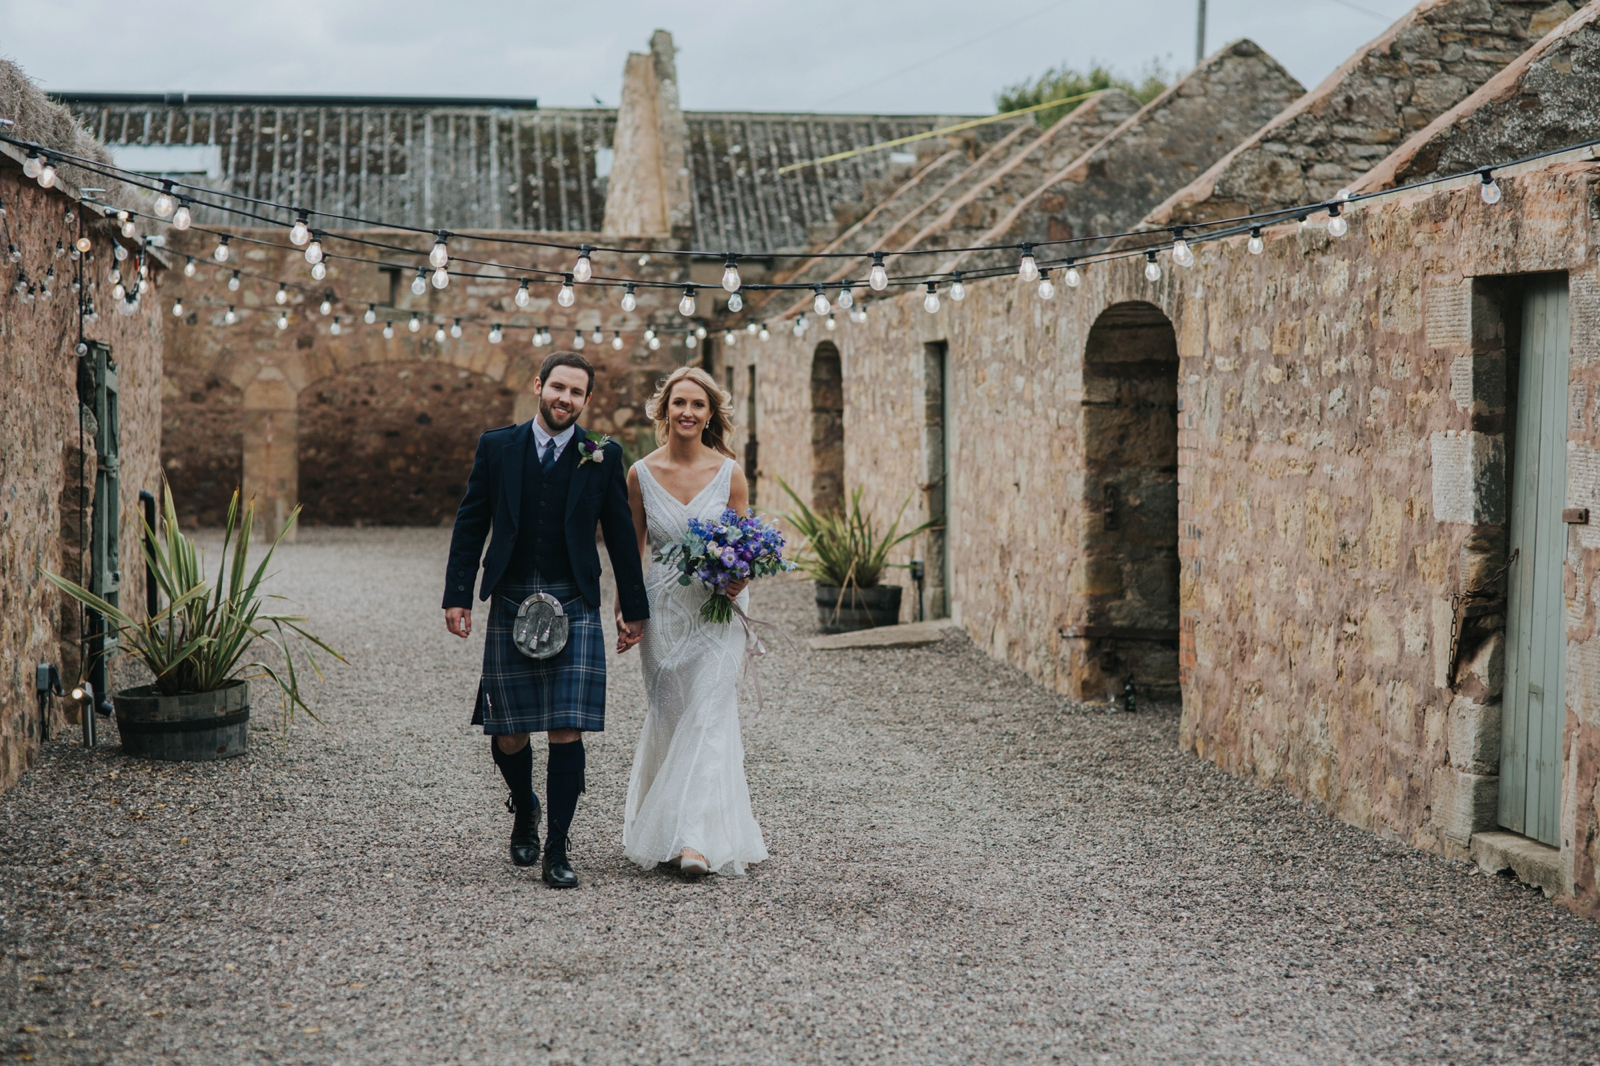 cow-shed-crail-rustic-wedding-gemma-andy-loraine-ross-photographygemma-andy-wedding-0528.jpg